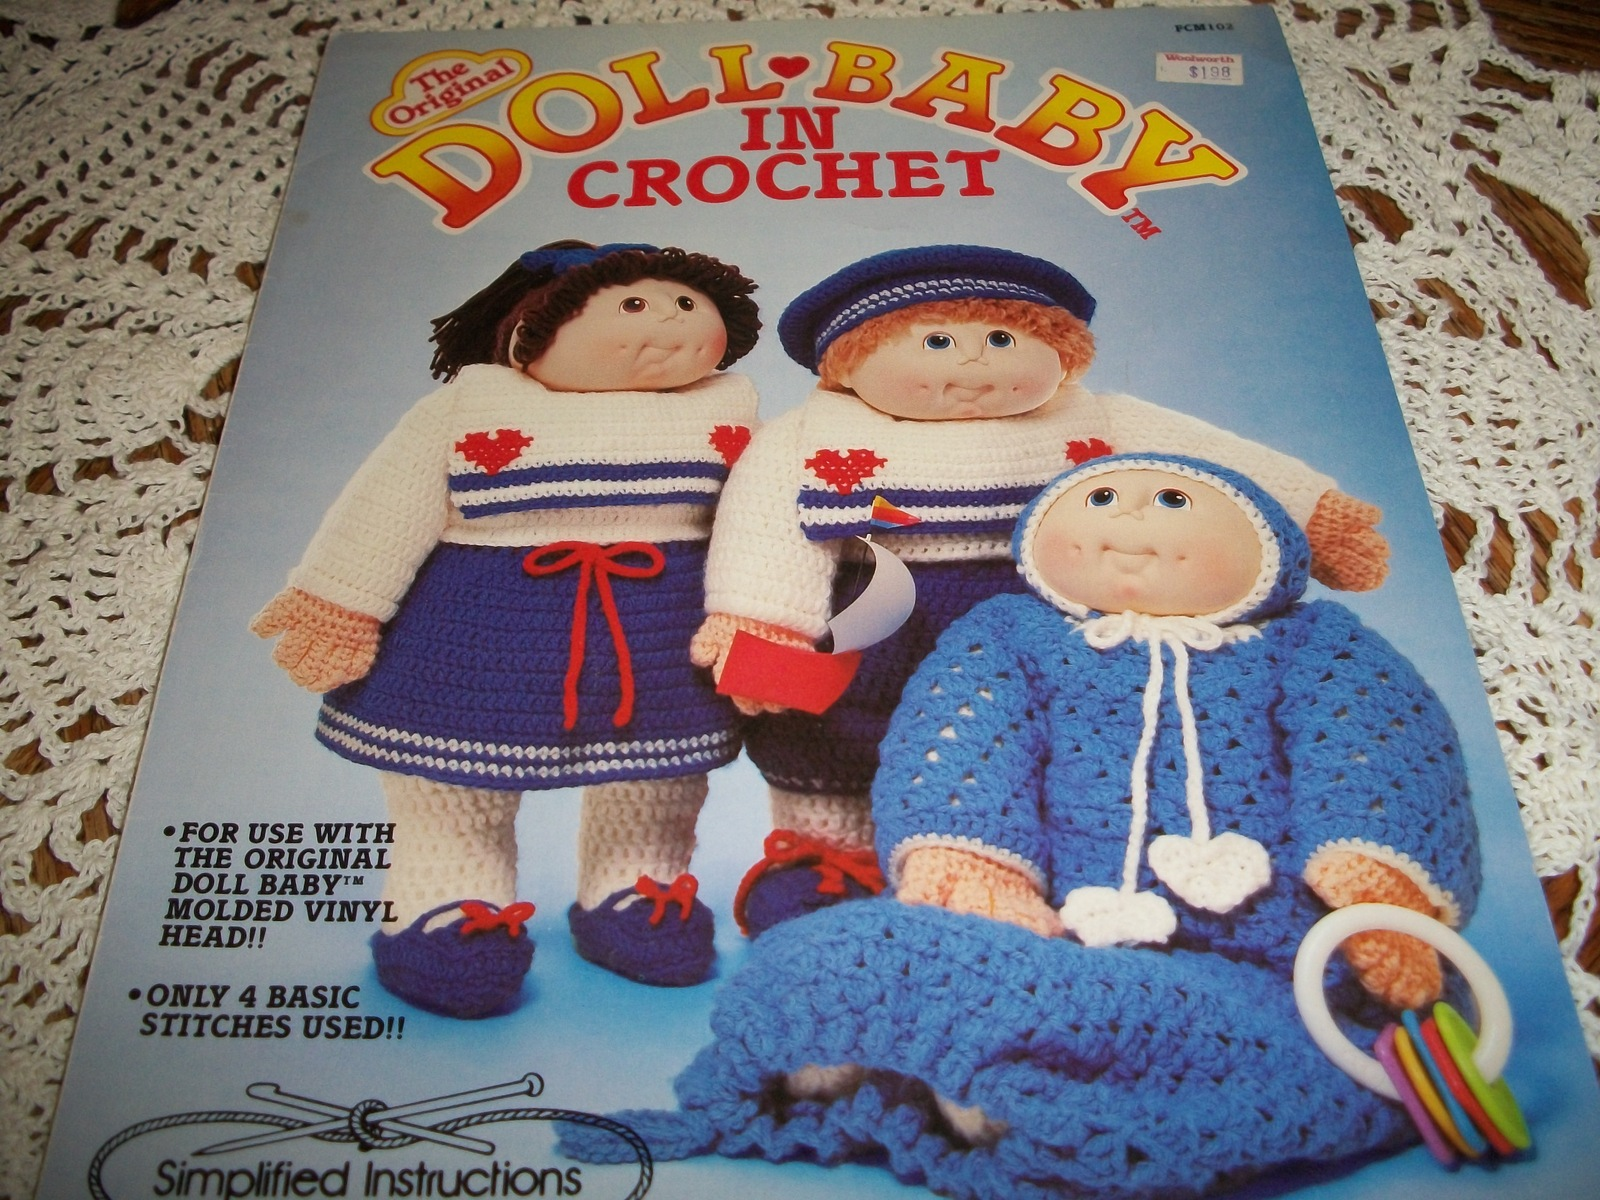 Primary image for The Original Doll Baby In Crochet